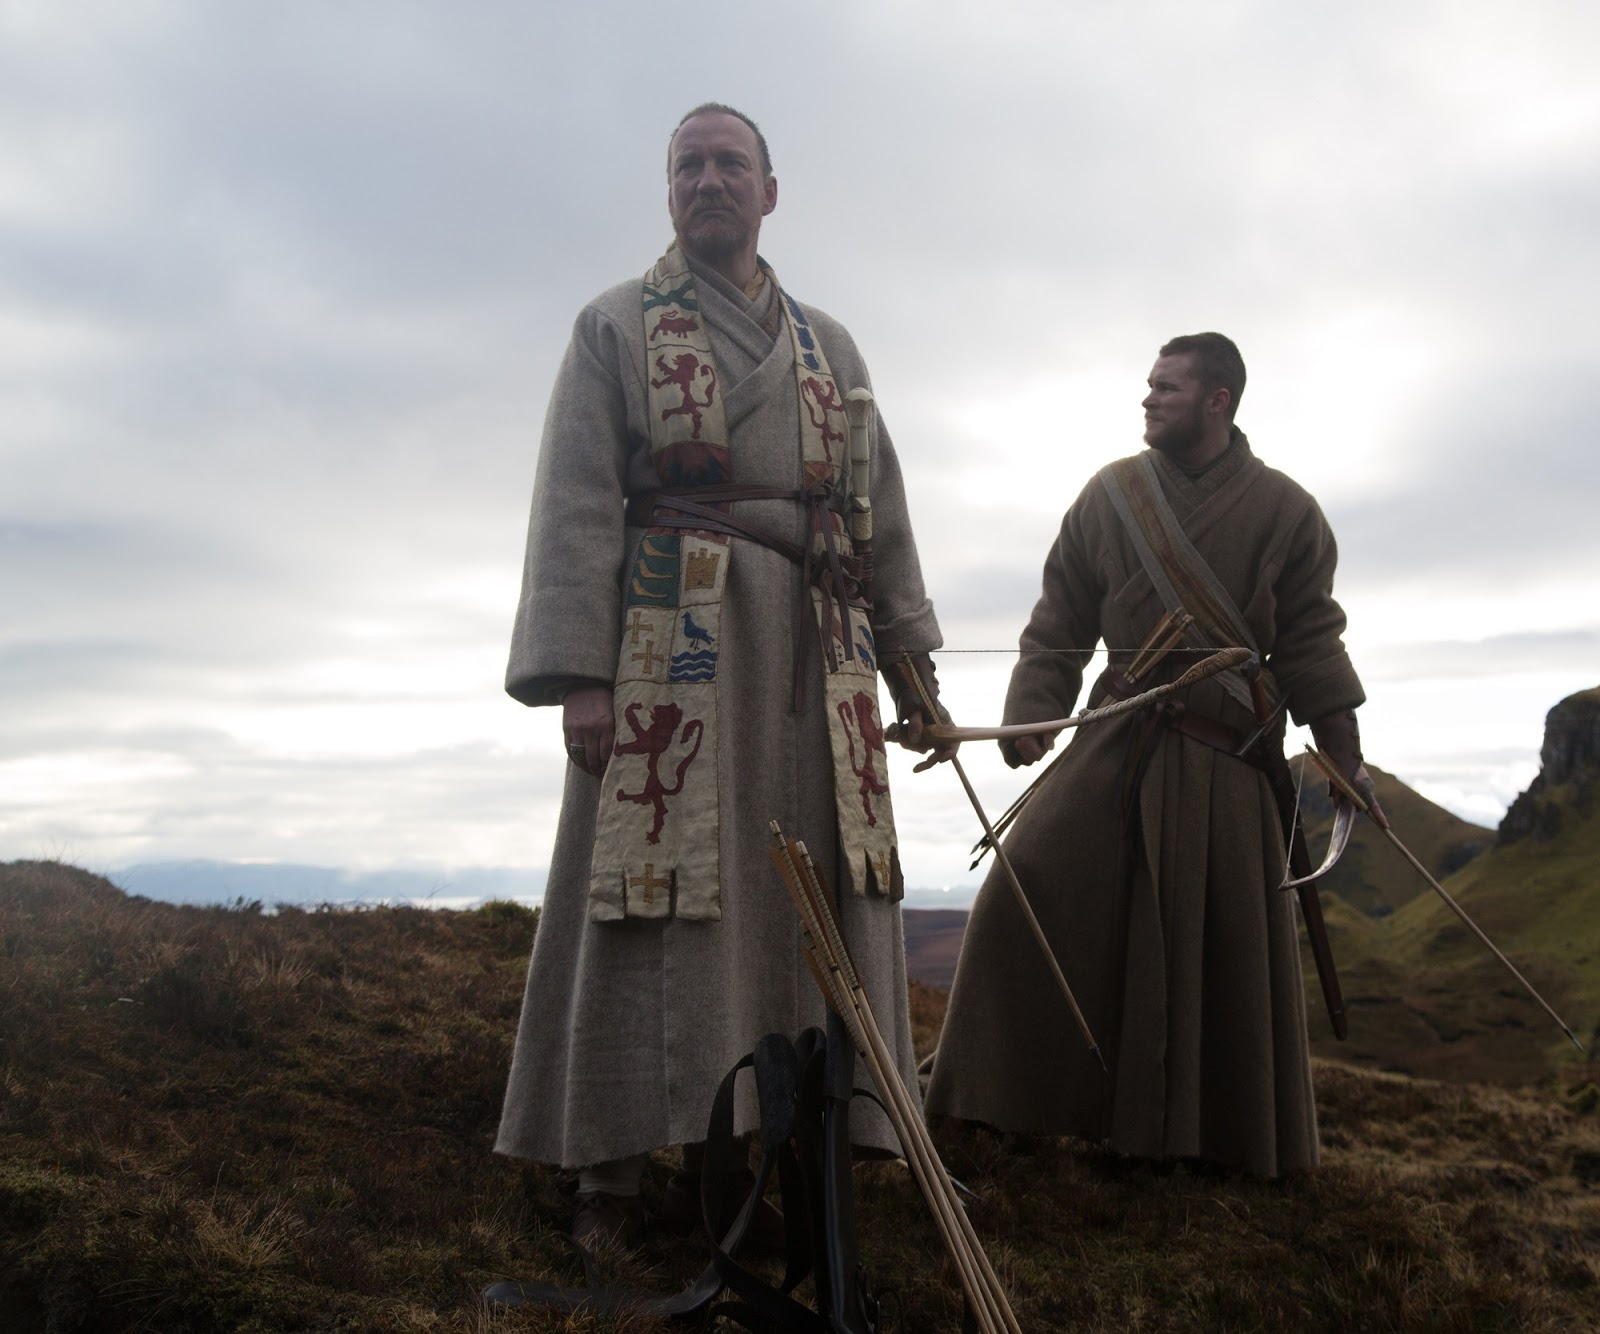 macbeth movie review S hakespeare's tragedy and noir-thriller prototype macbeth appears in a new screen version from australian film-maker justin kurzel, famous for his brutal crime movie snowtown — the story of.